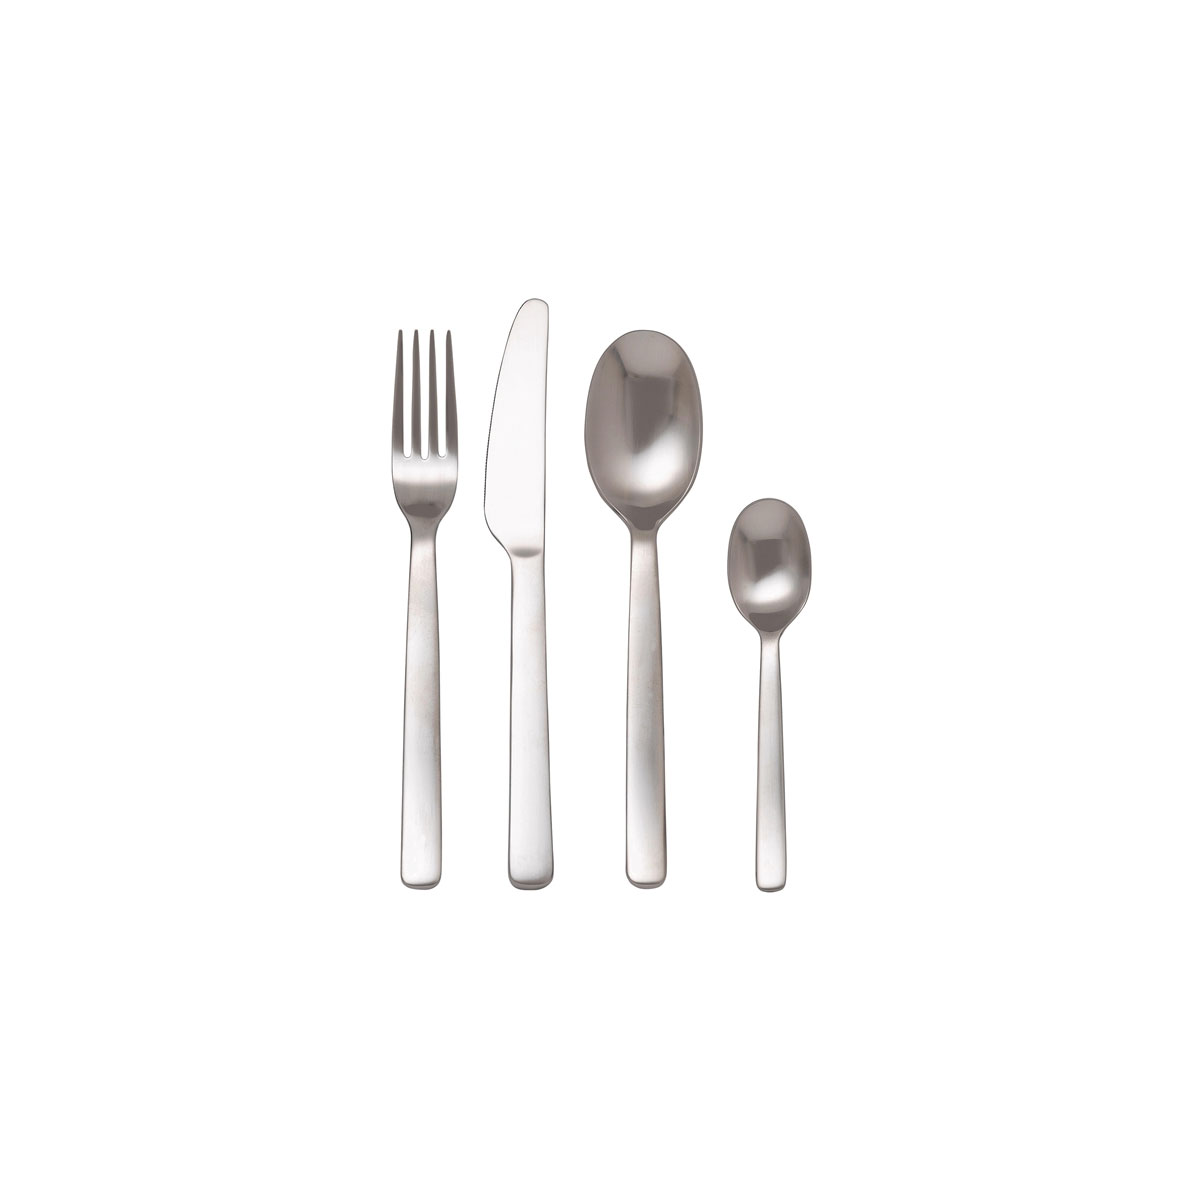 Royal Doulton Barber and Osgerby Olio 16-Piece Flatware Set